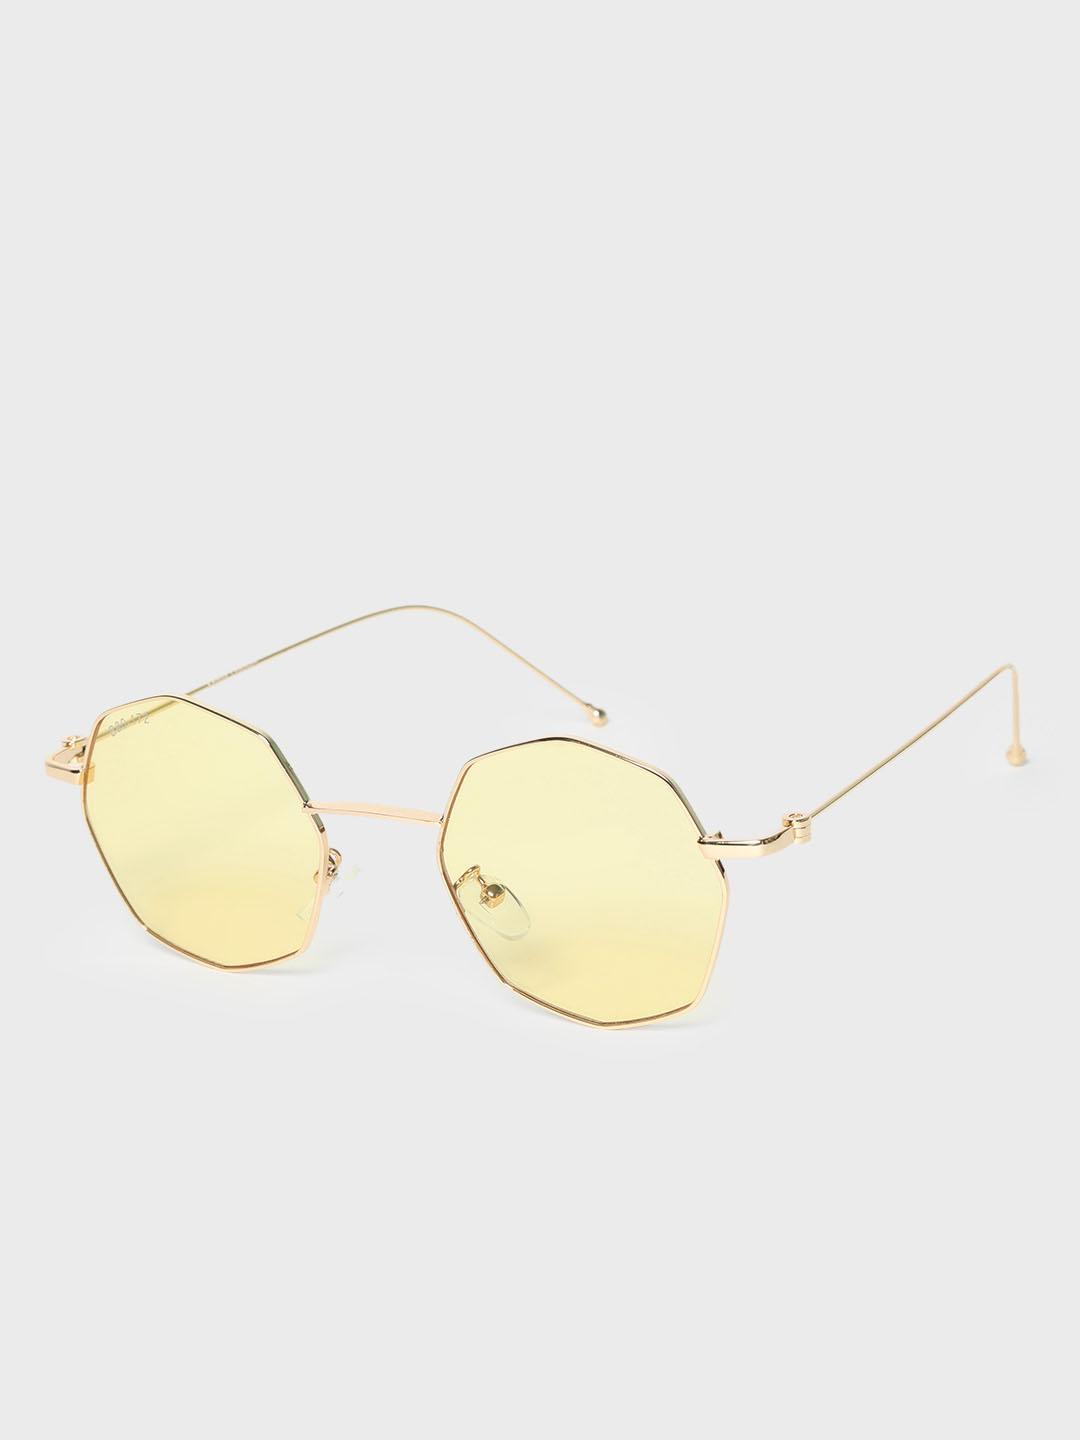 KOOVS Yellow Octagonal Frame Tinted Retro Sunglasses 1